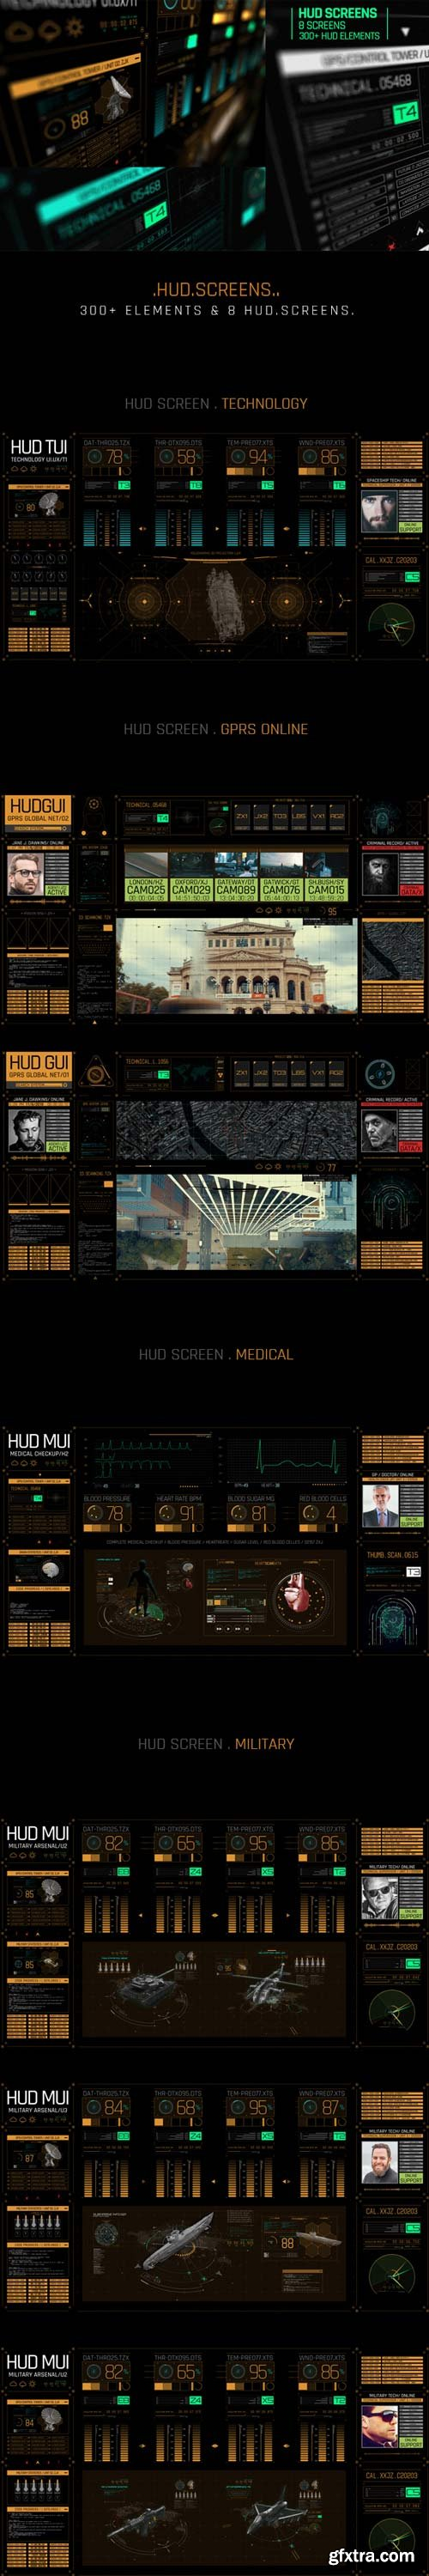 Videohive - HUD Screens - 22837246